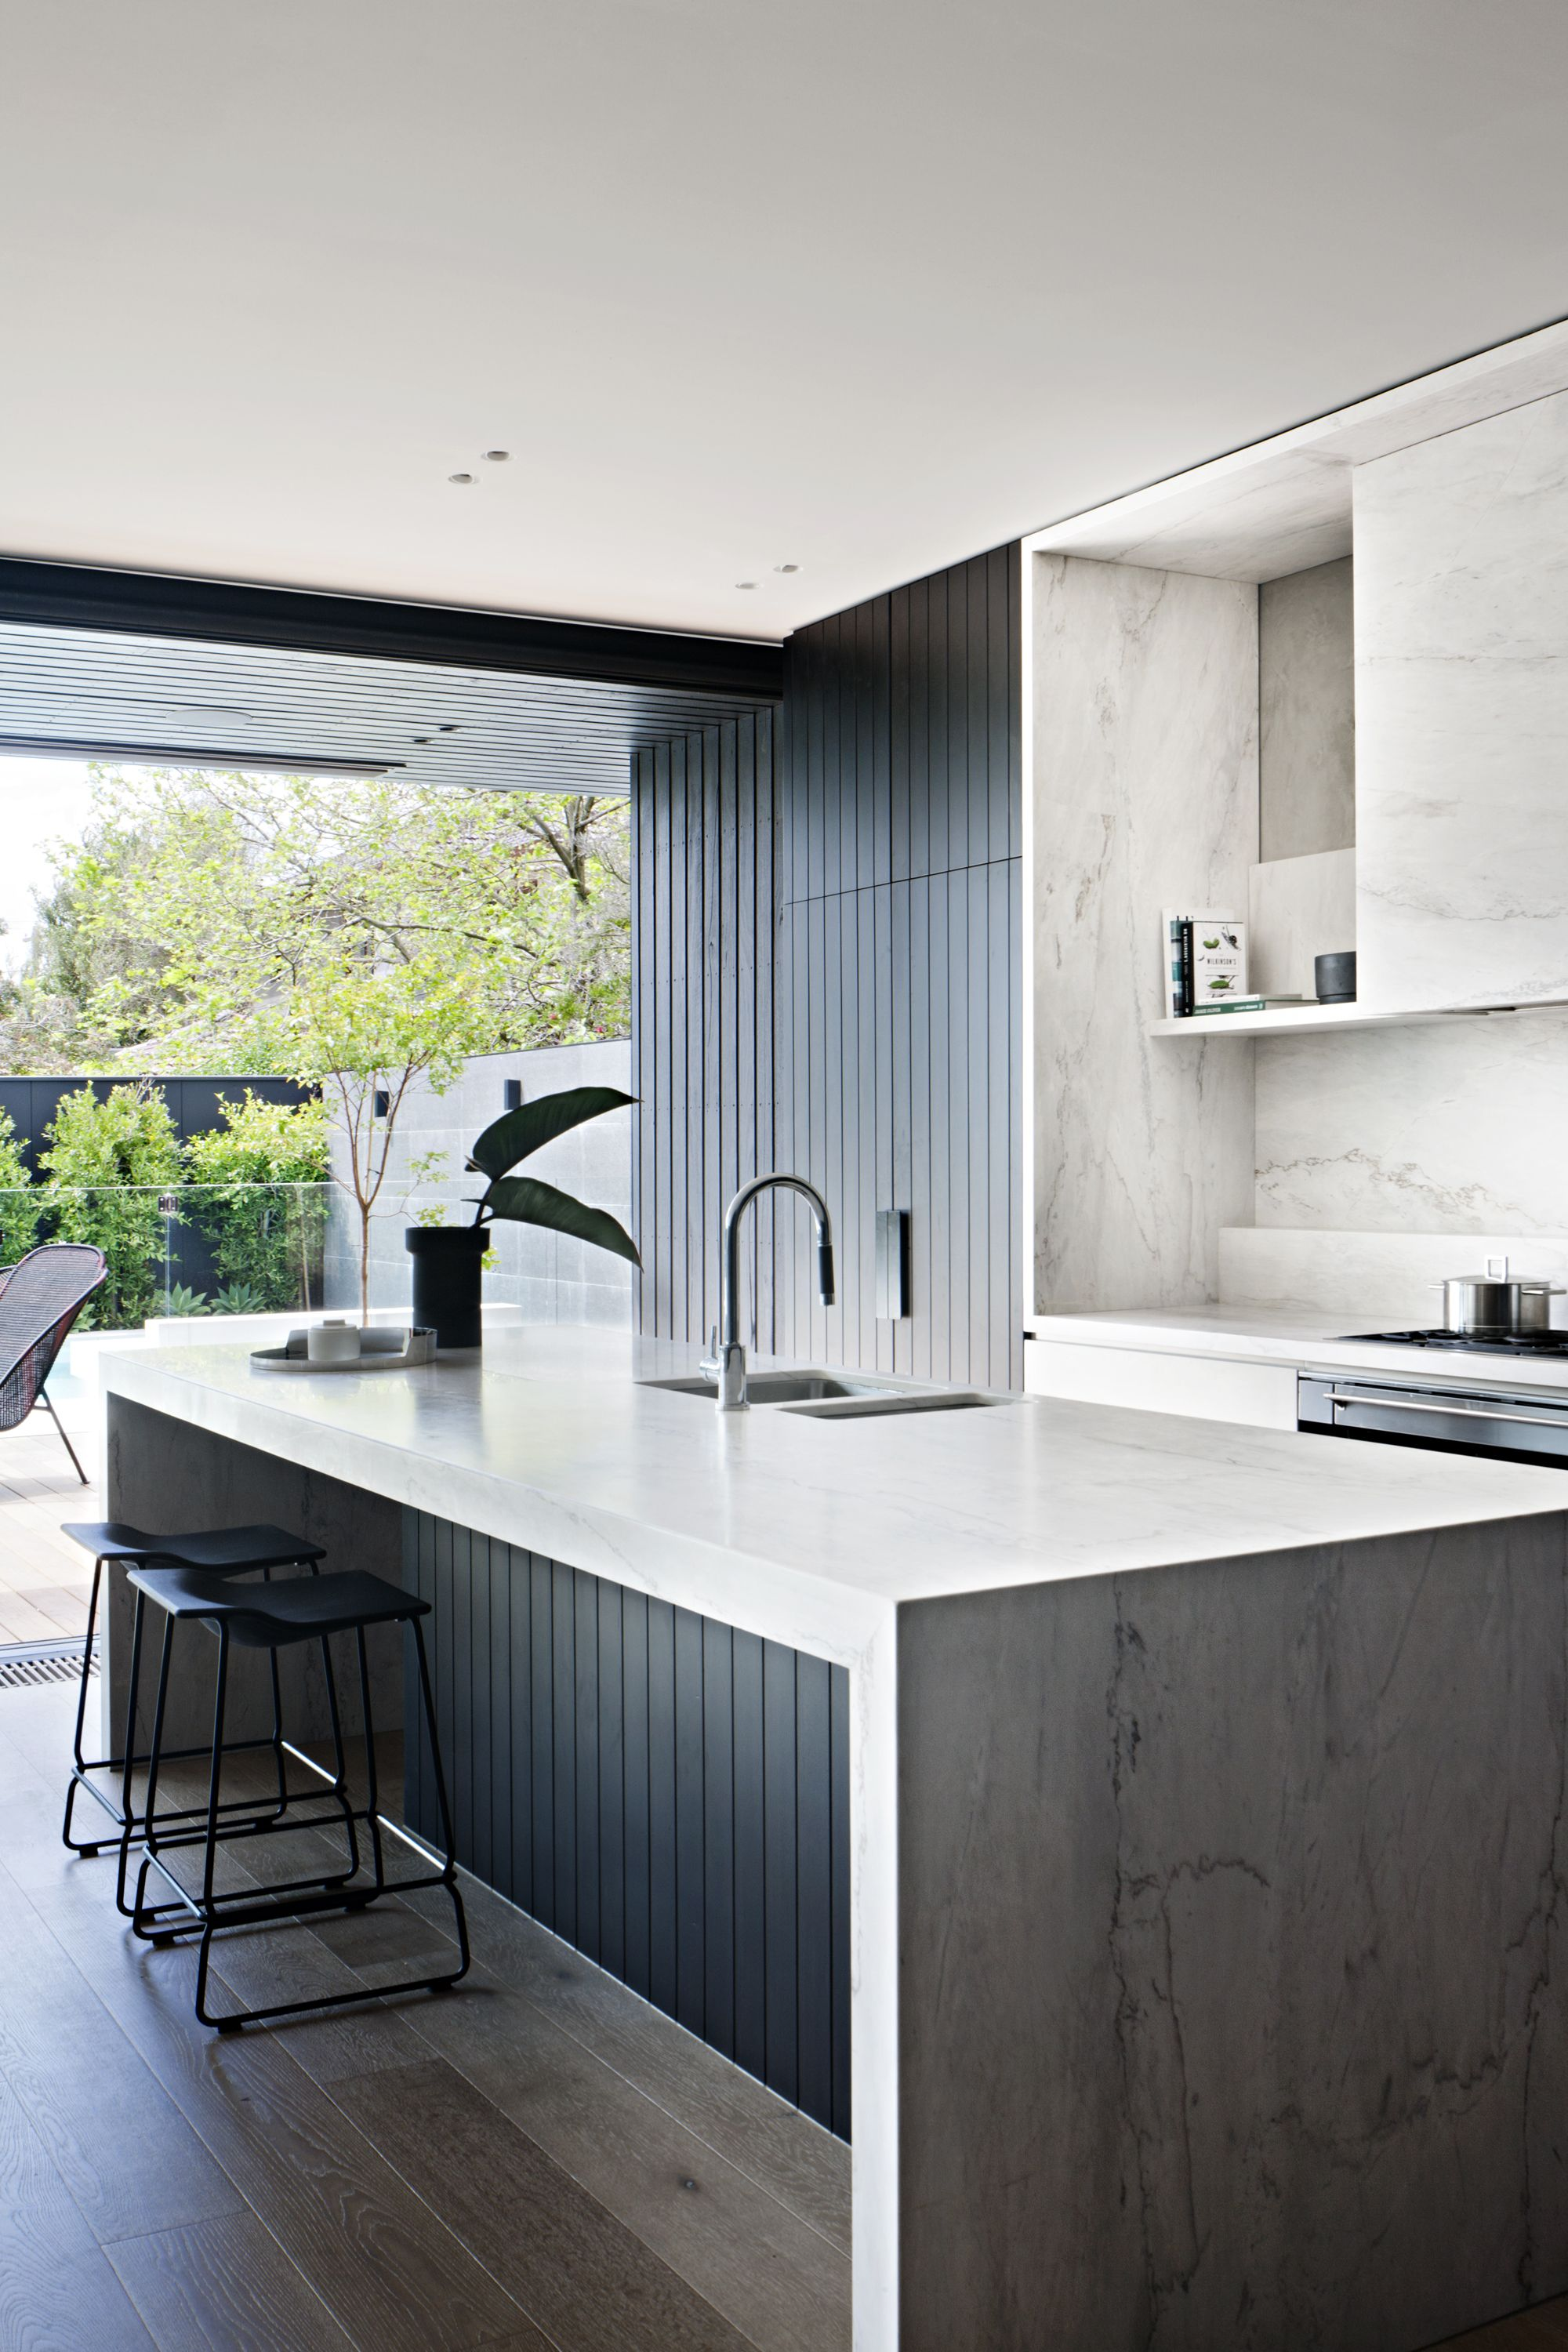 jbc residence - mim design | kitchen | pinterest | idée de cuisine